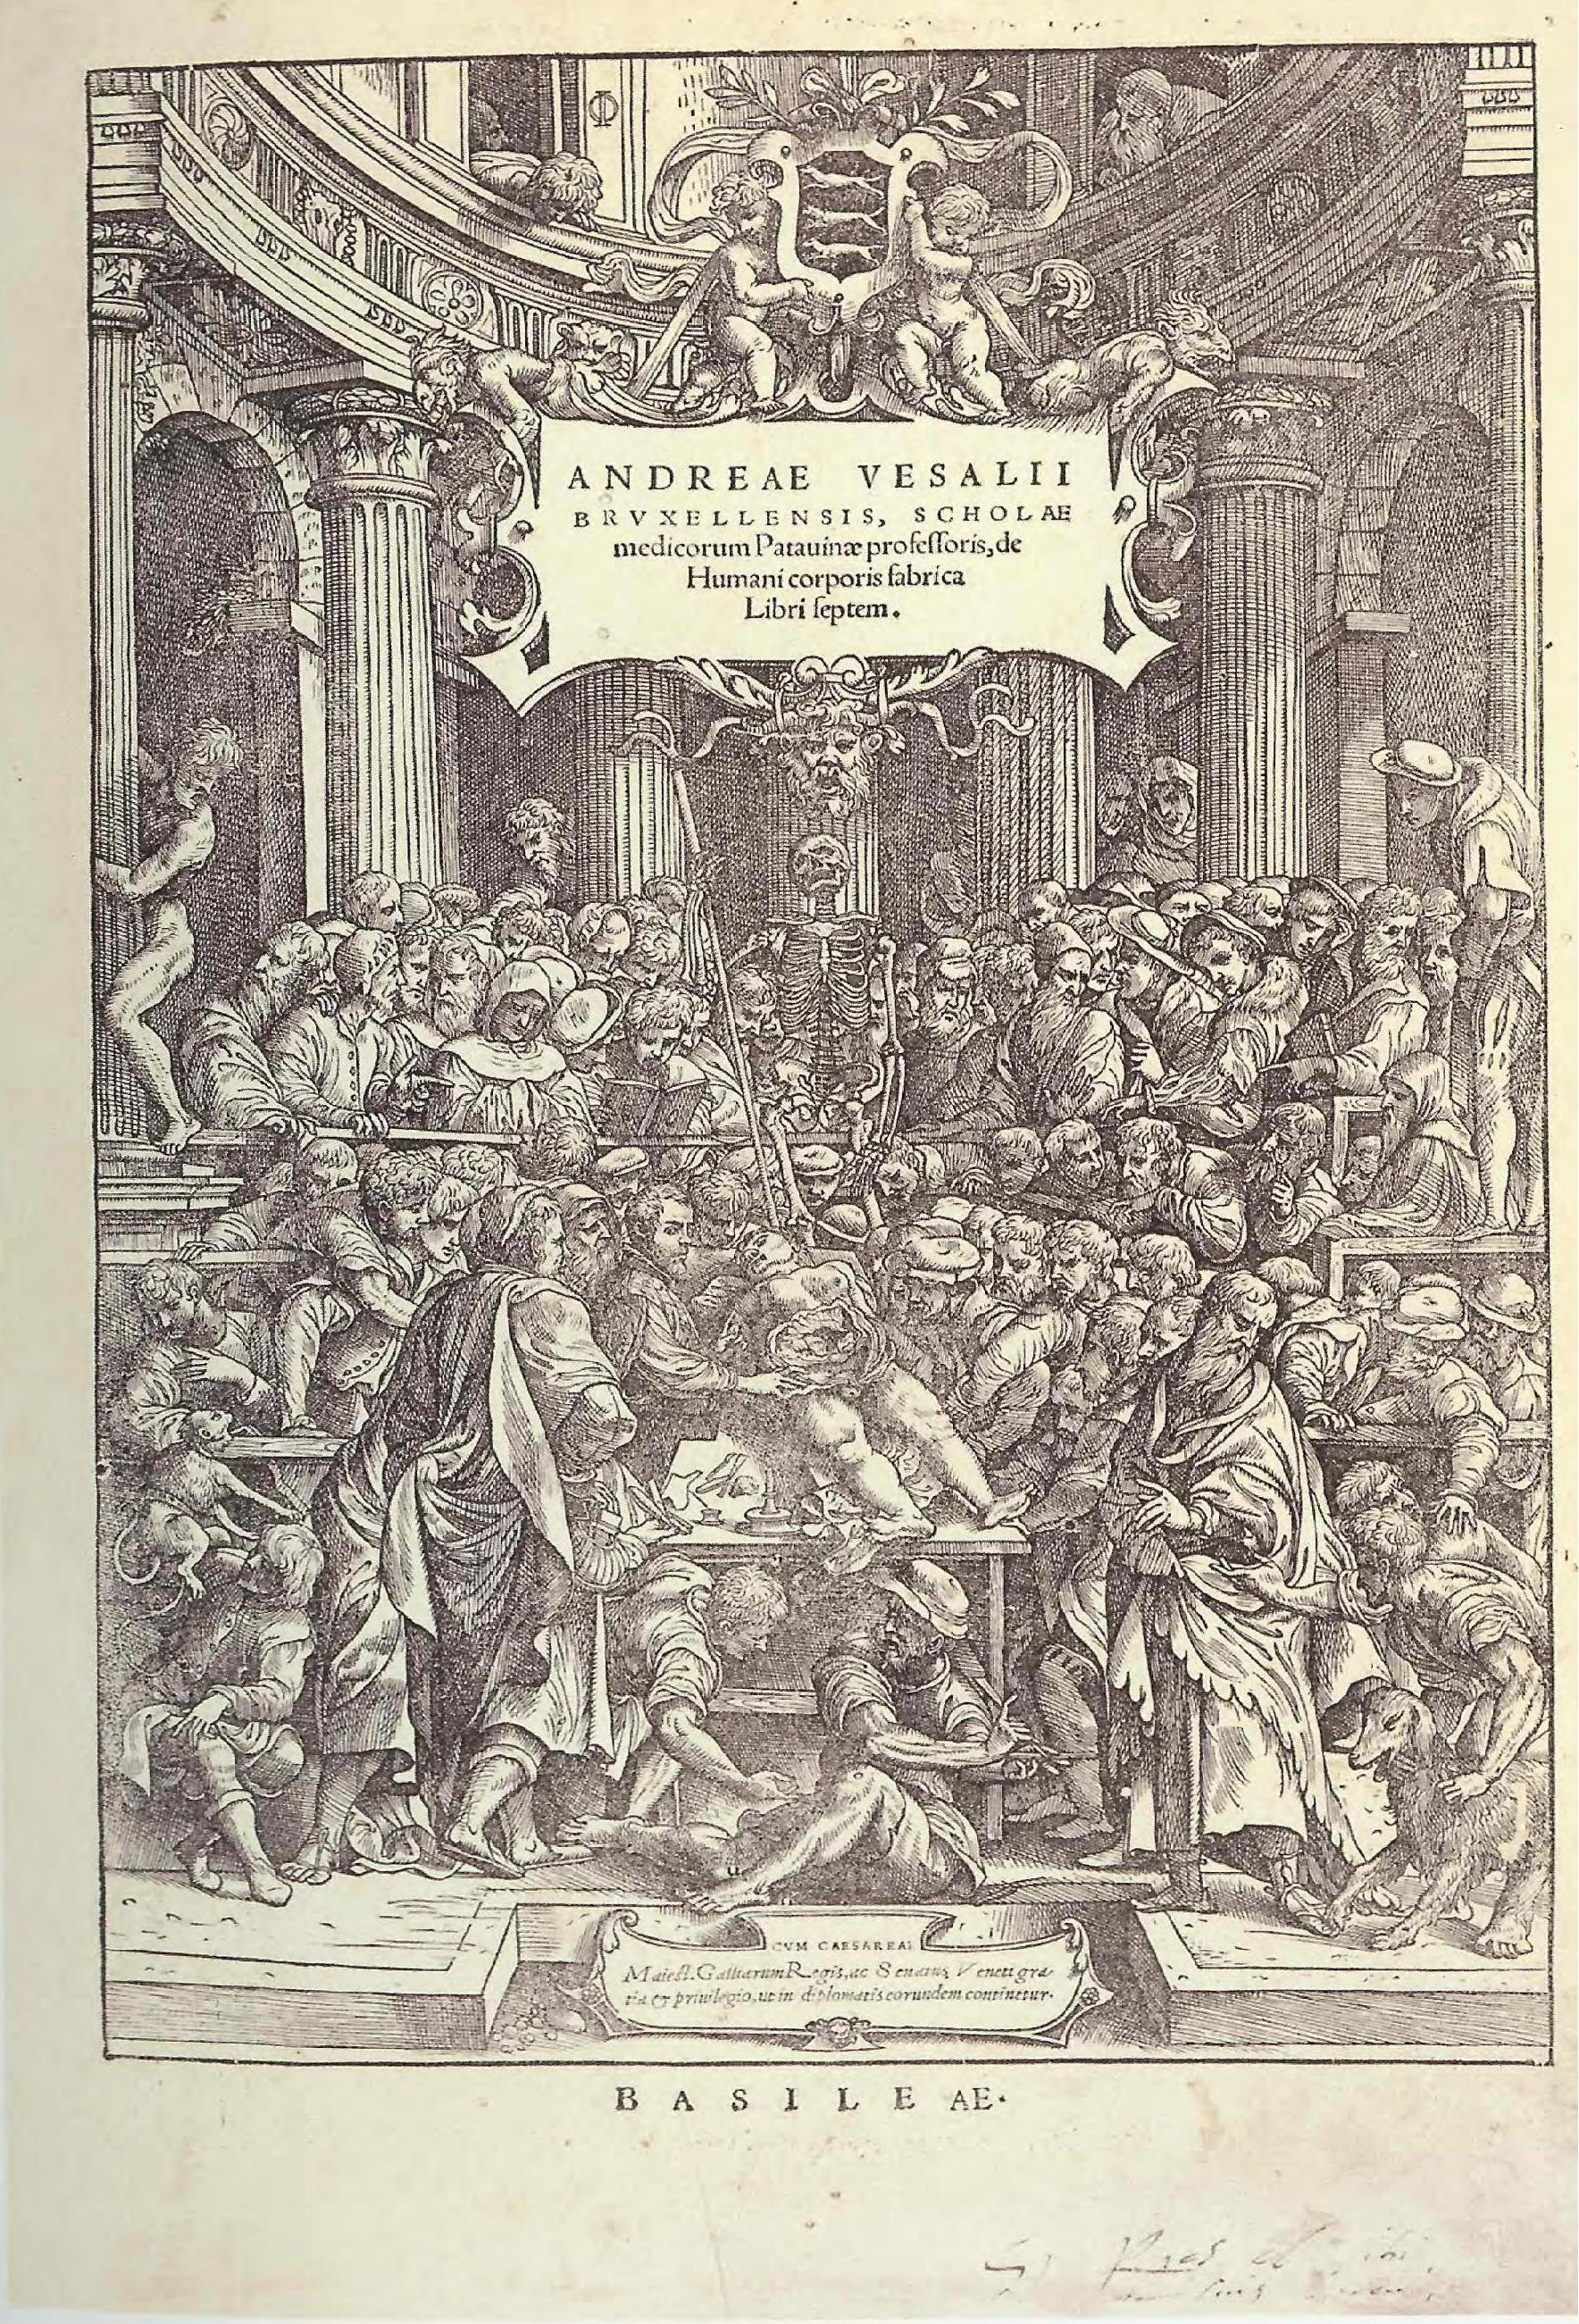 http://blogs.princeton.edu/rarebooks/images/ves.titlepage.jpg